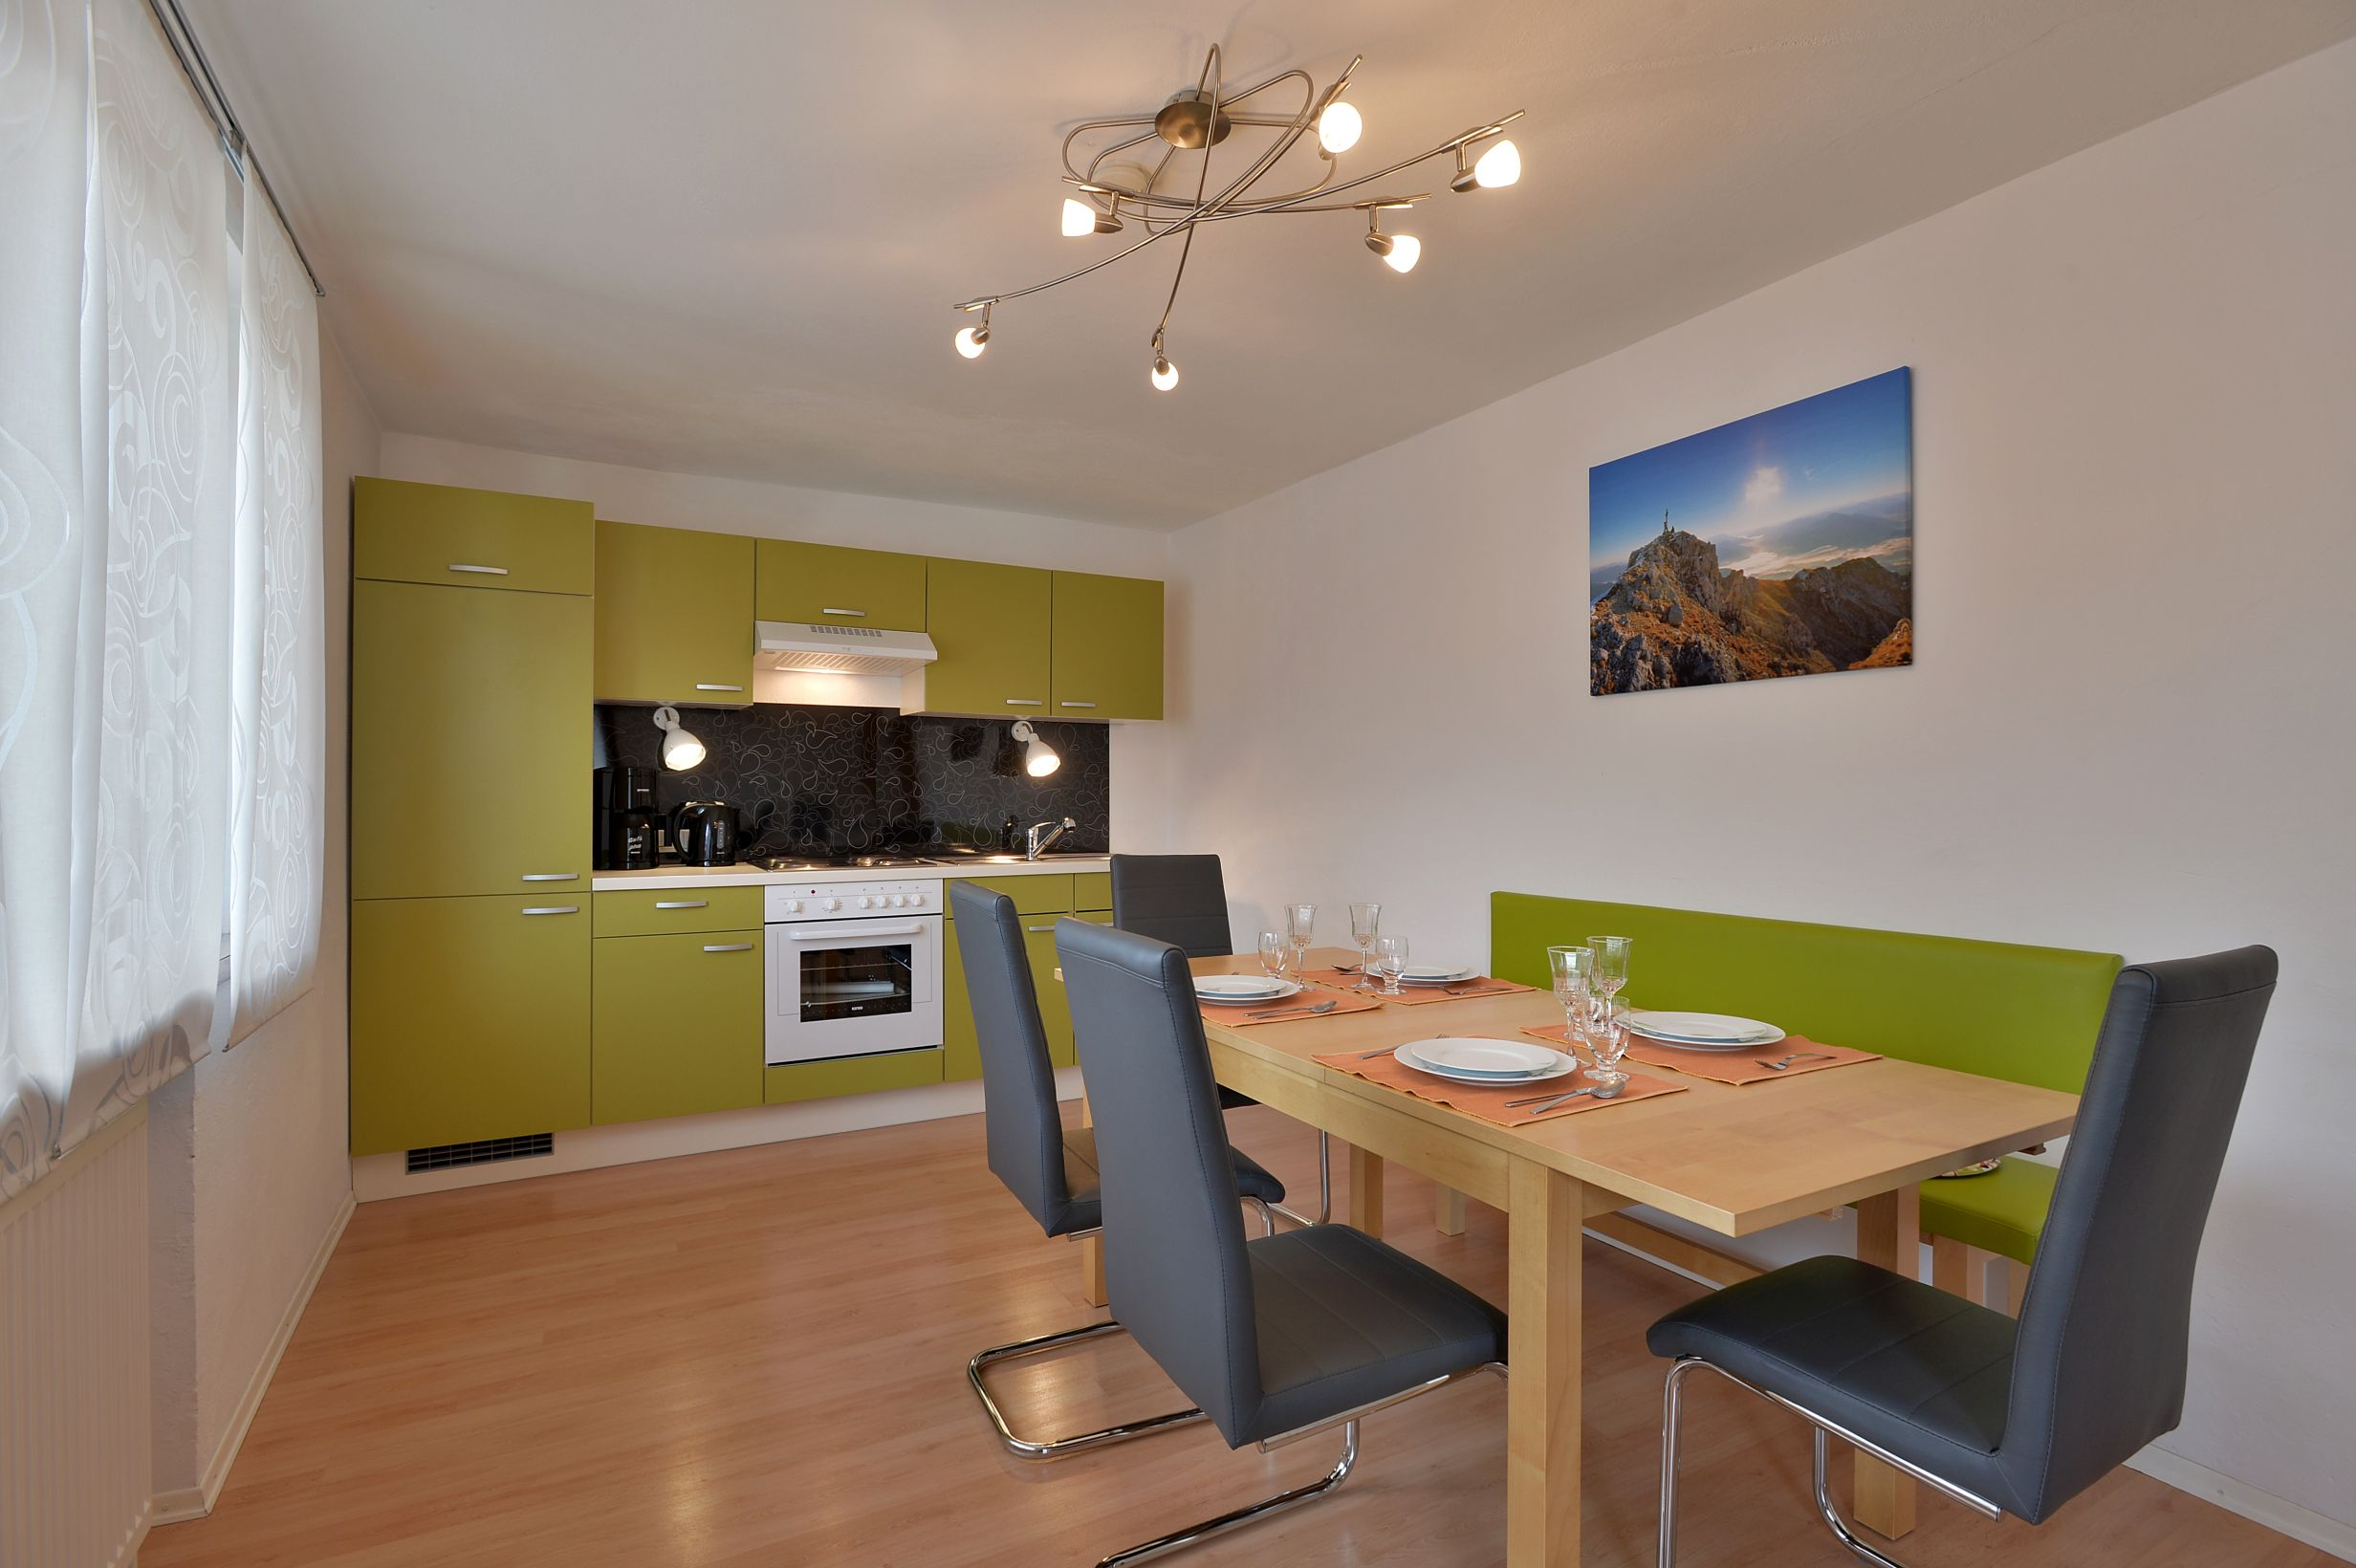 Sport-Mayr-Appartements-Dorf-31-Kueche web